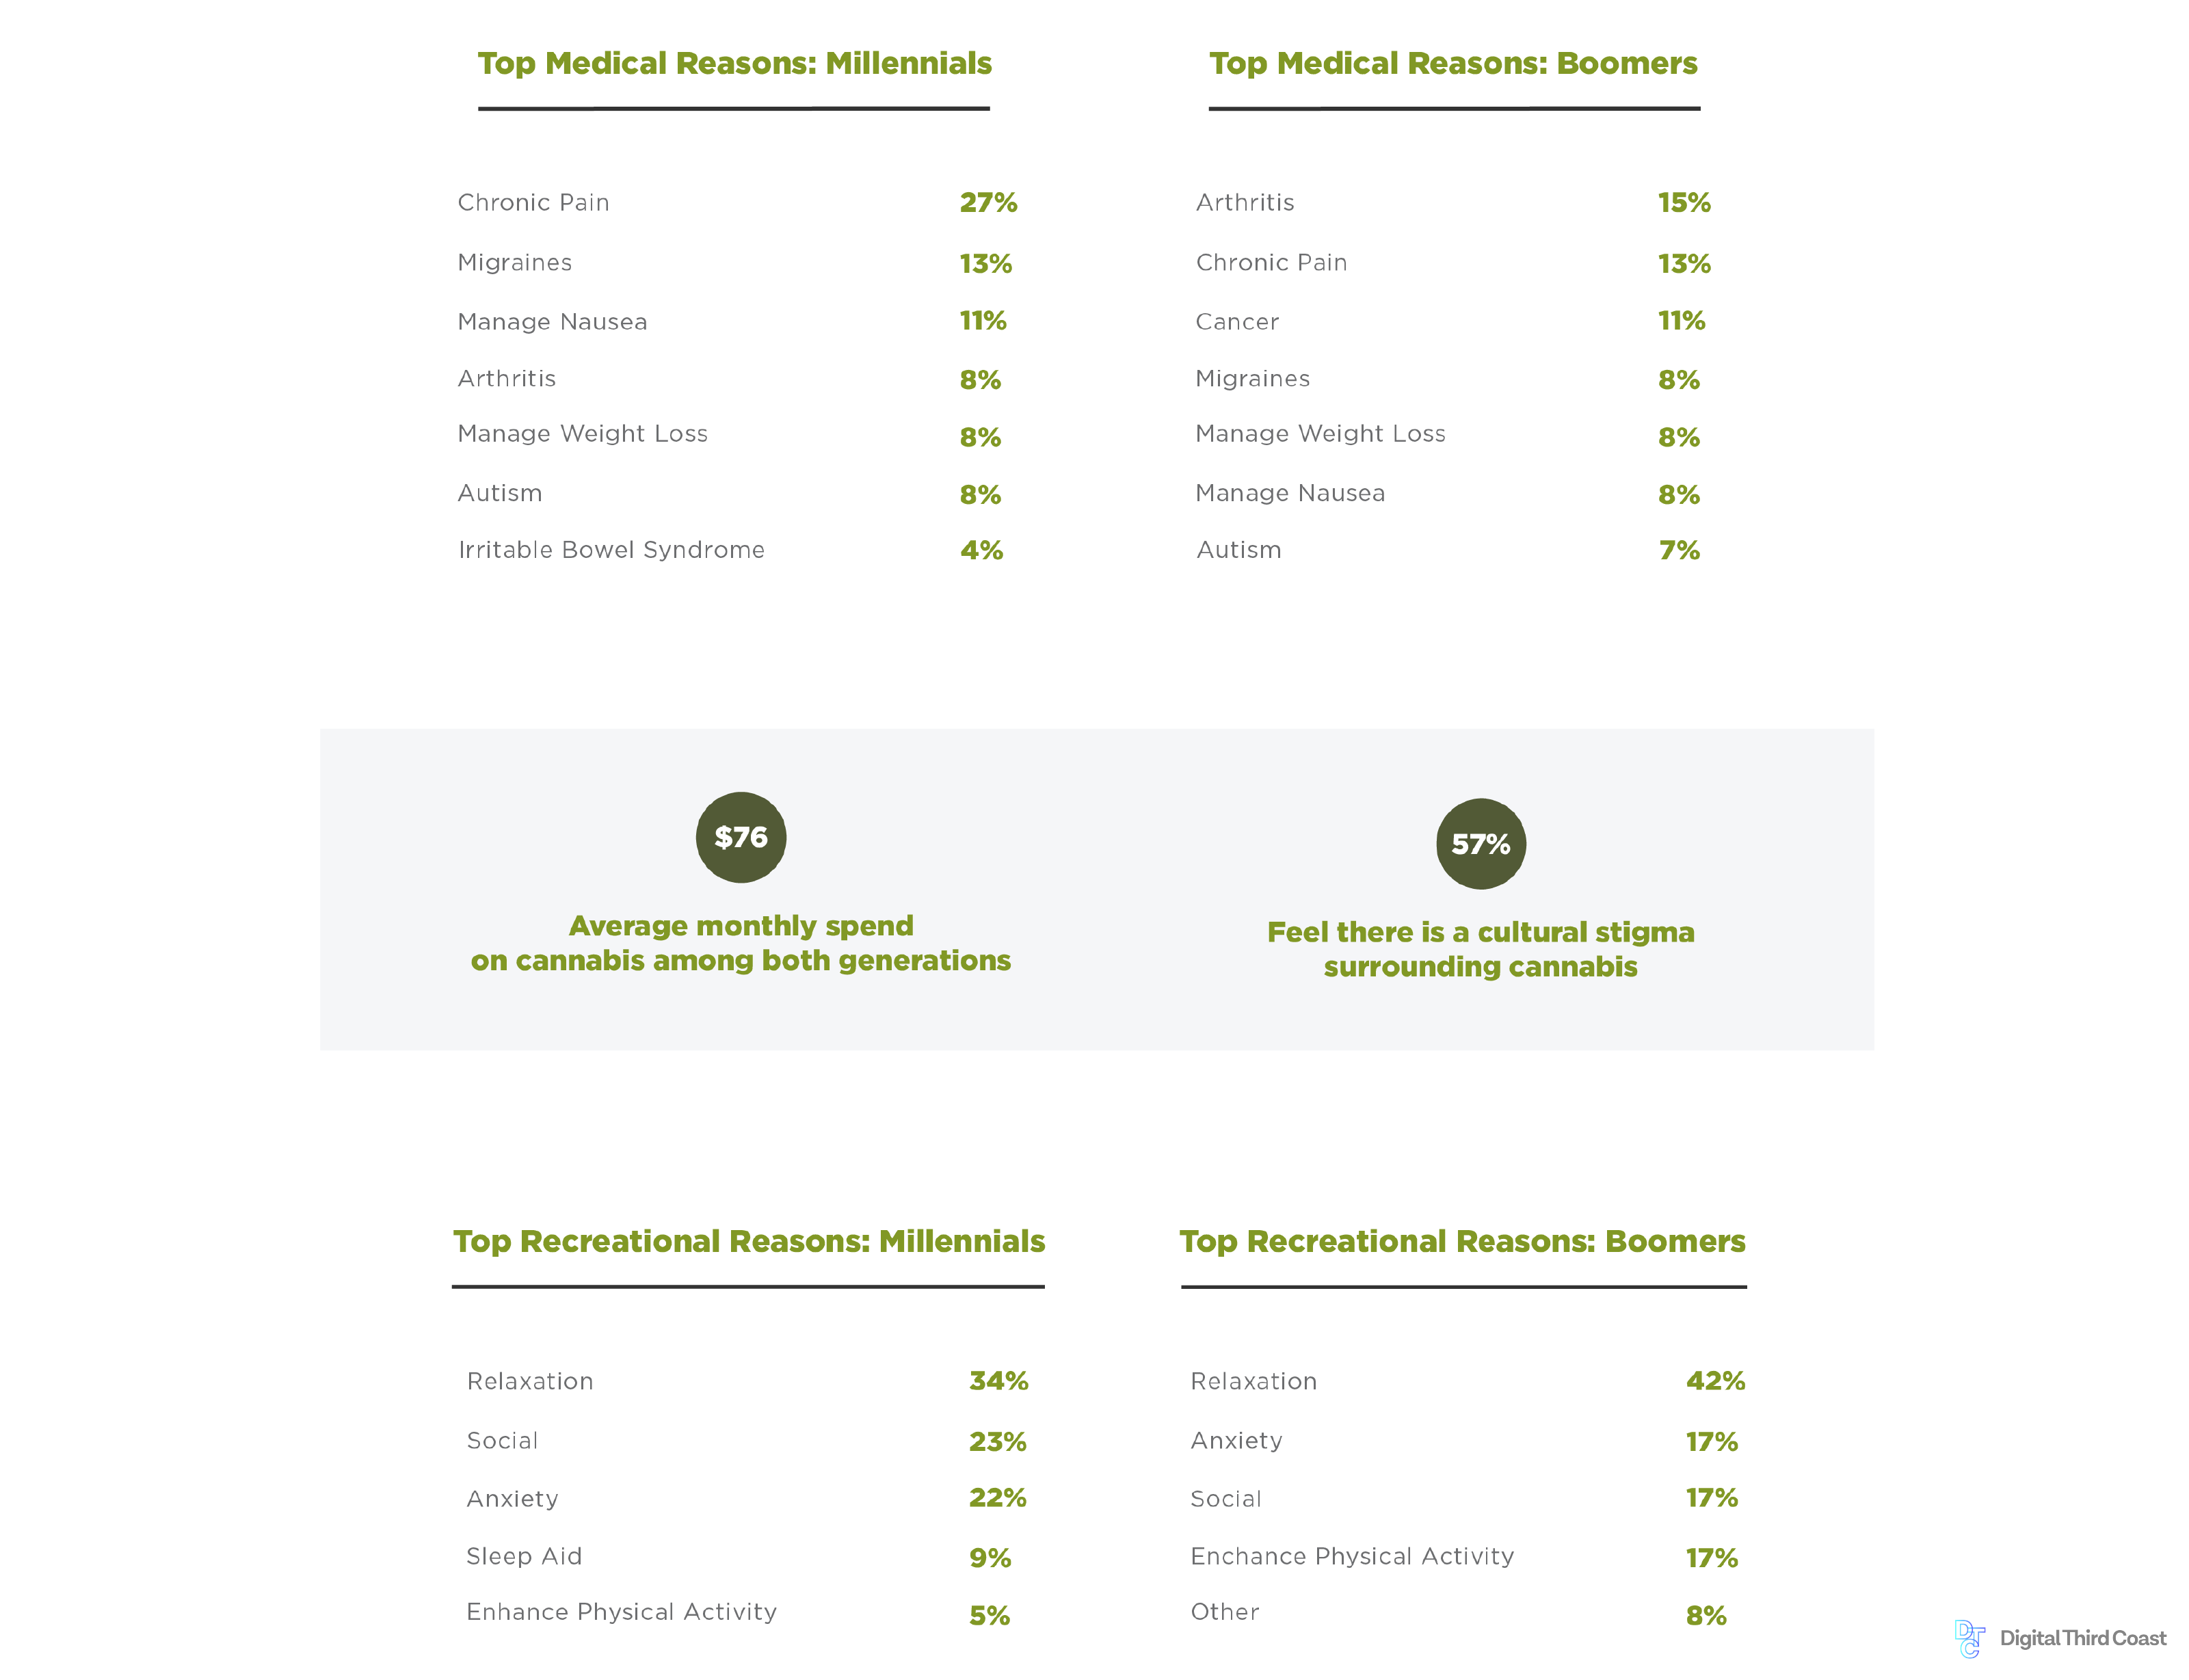 Using survey data to produce content marketing content. This particular examples shows the content campaign produced for a survey of millennial and Baby Boomer cannabis users.